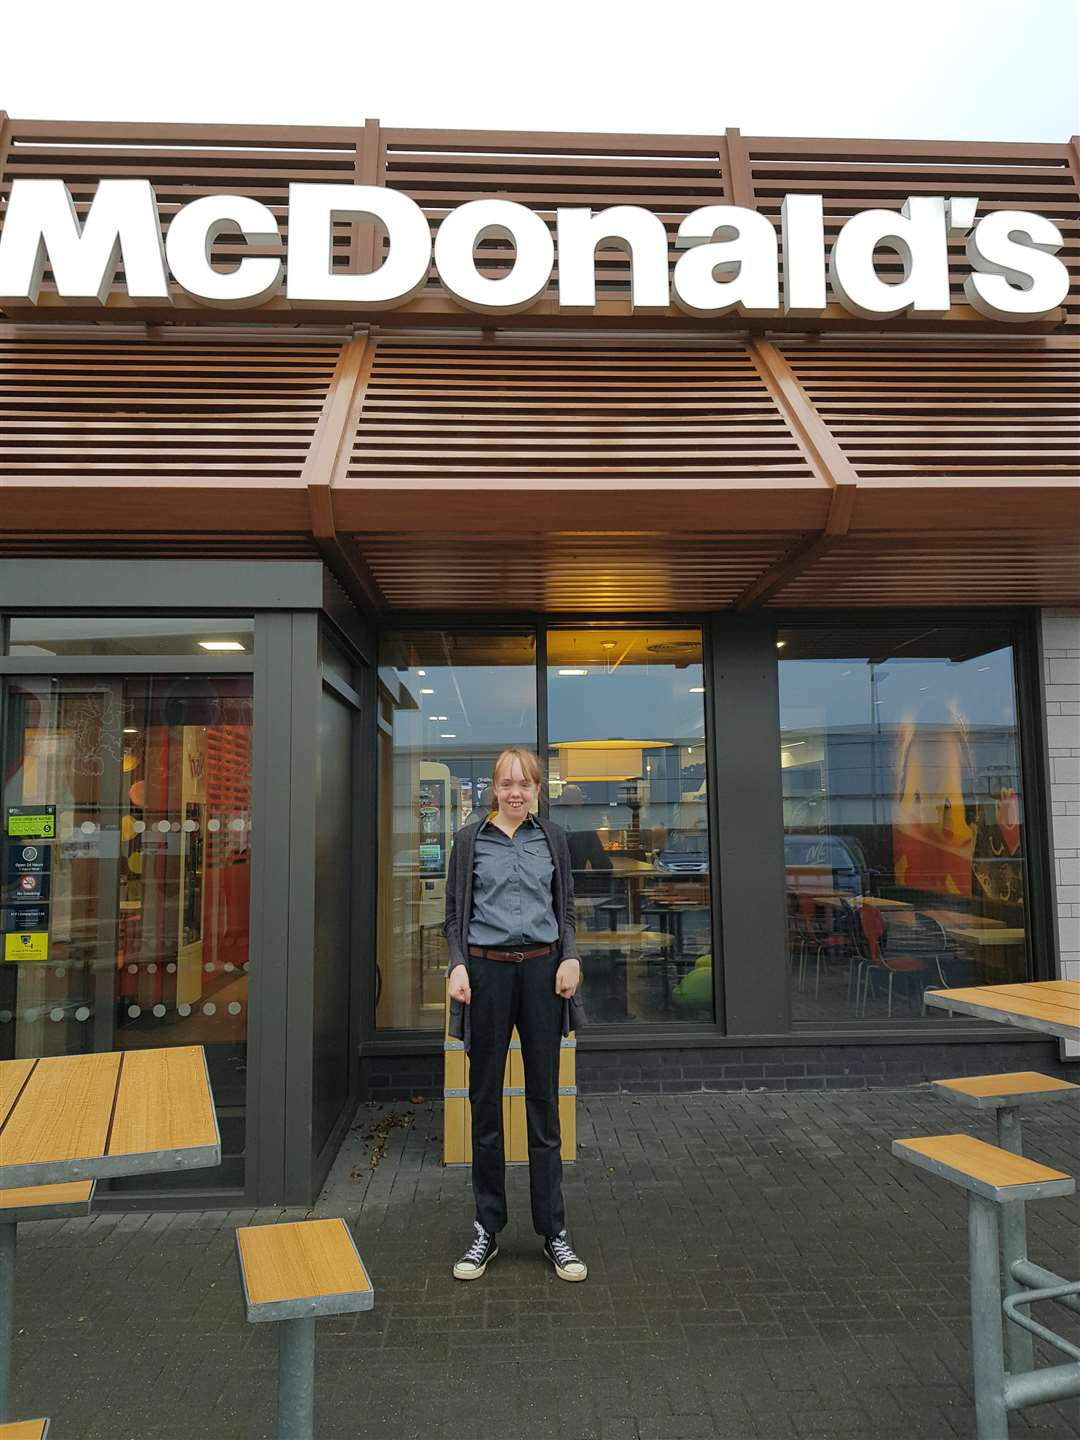 Bourne McDonalds work experience girl 271218 (6228212)